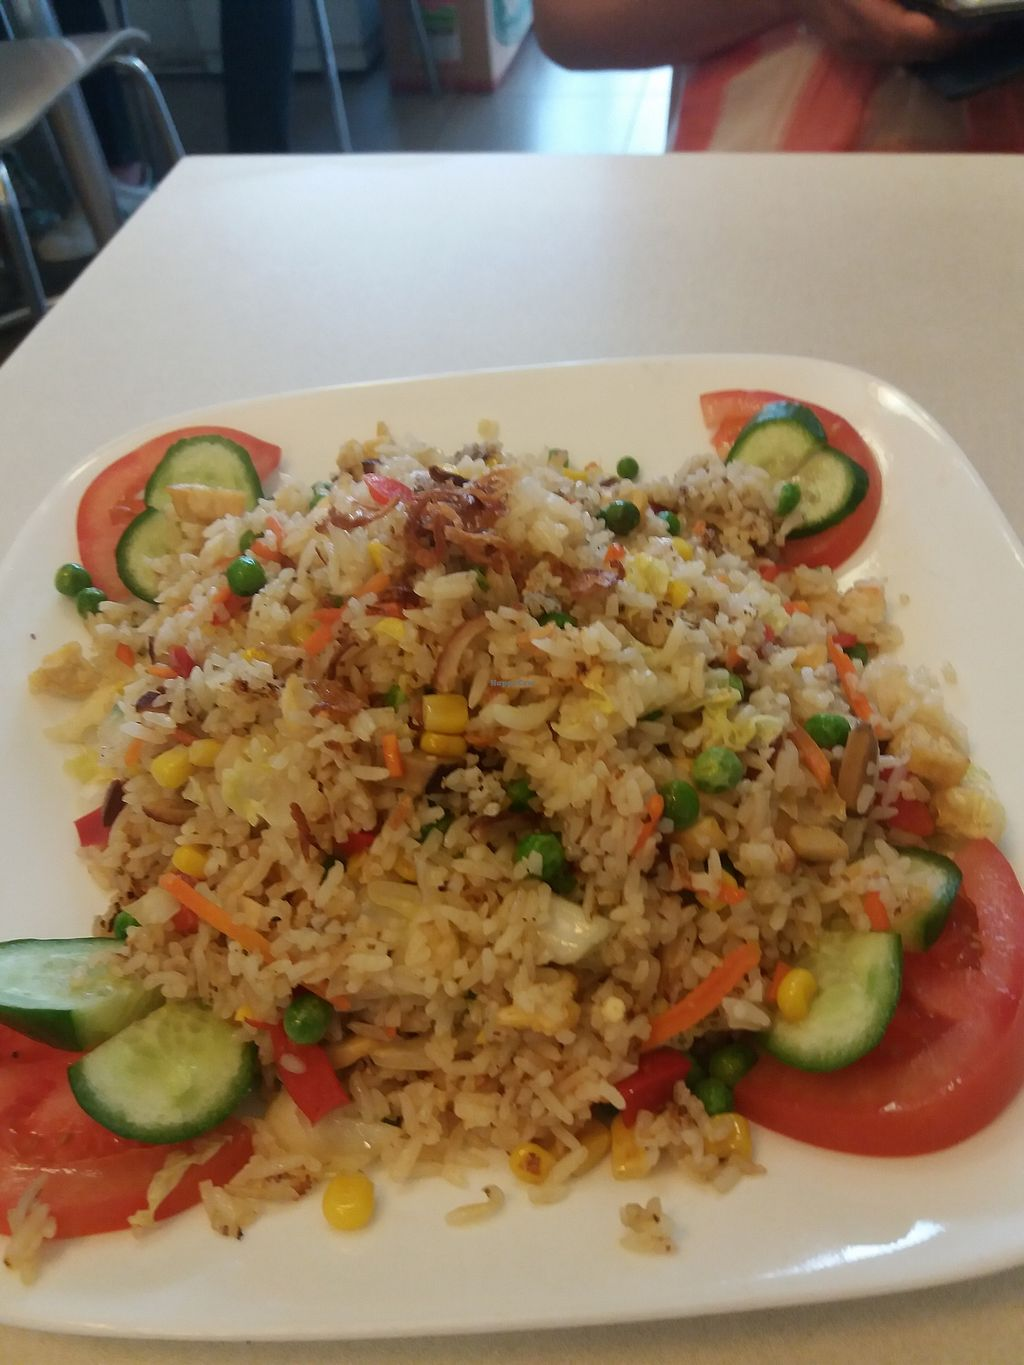 """Photo of Loving Lien  by <a href=""""/members/profile/veganvirtues"""">veganvirtues</a> <br/>Combination veggies and rice <br/> October 27, 2017  - <a href='/contact/abuse/image/88632/319155'>Report</a>"""